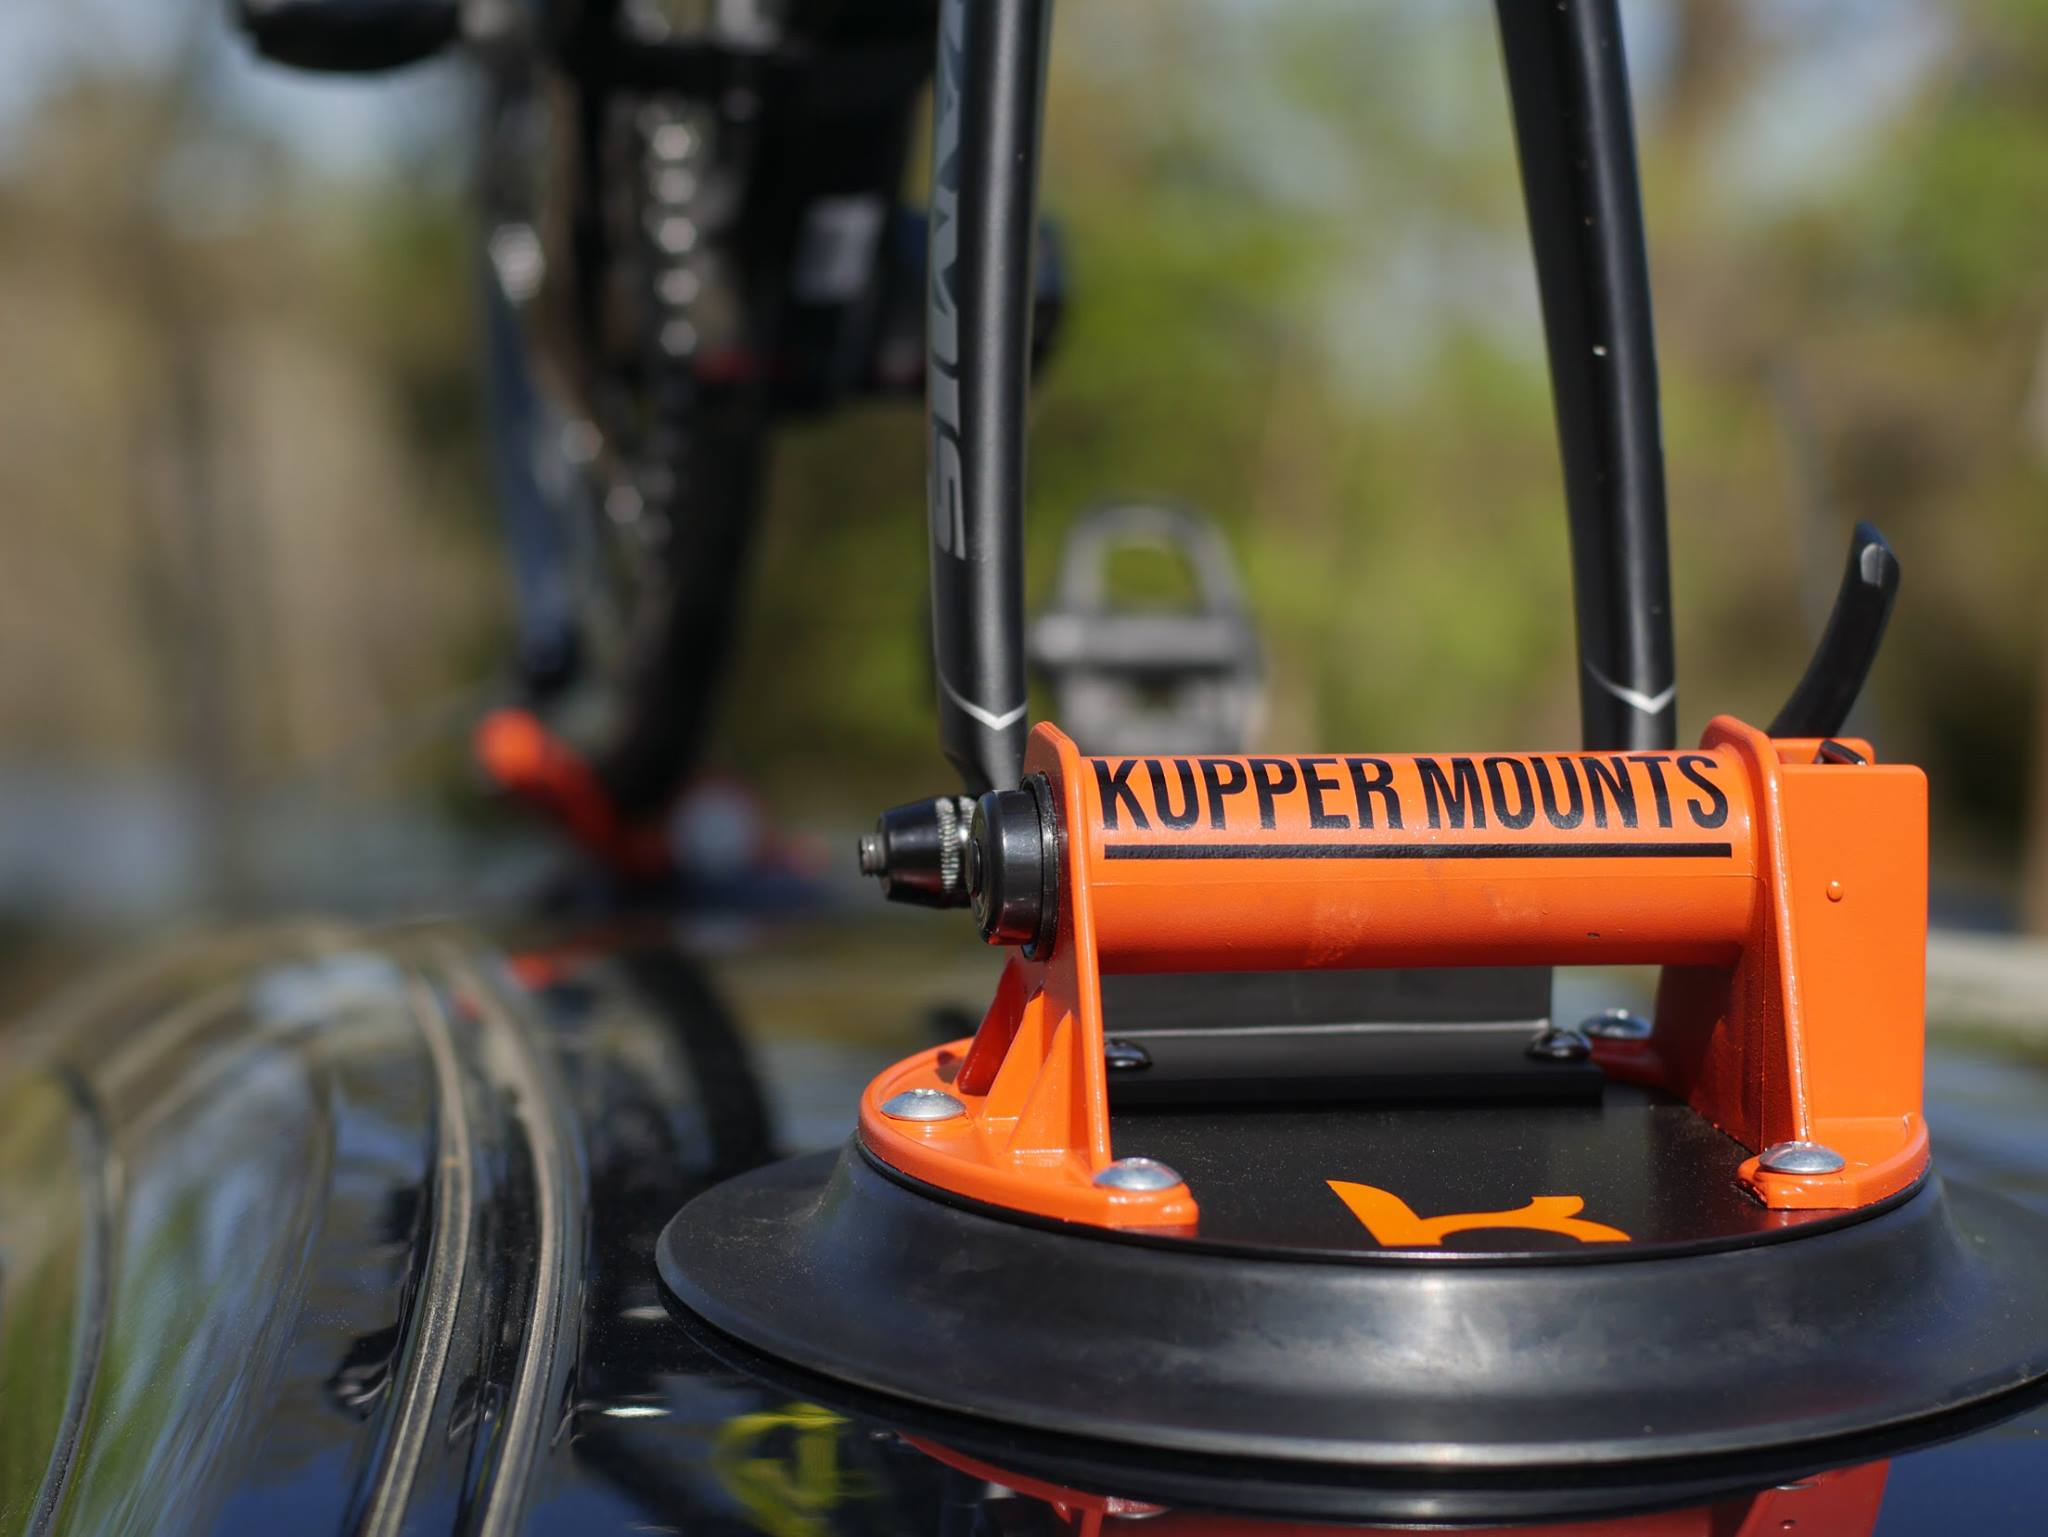 Kupper Mounts - smallest bike carrier ever